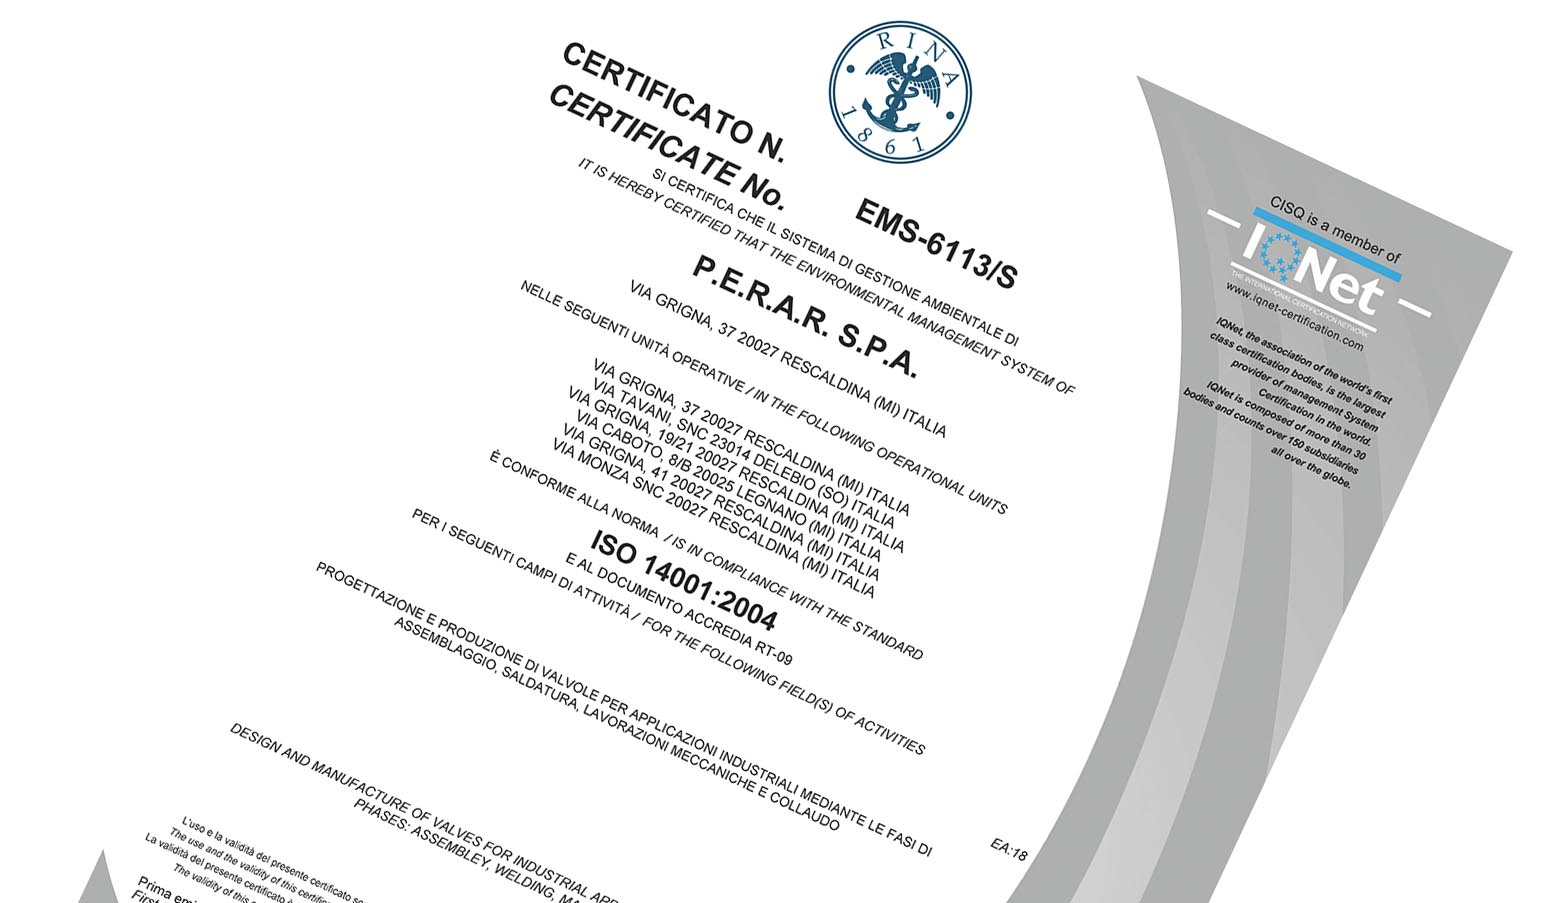 That's Perar Quality:  ISO 14001:2004 Certification